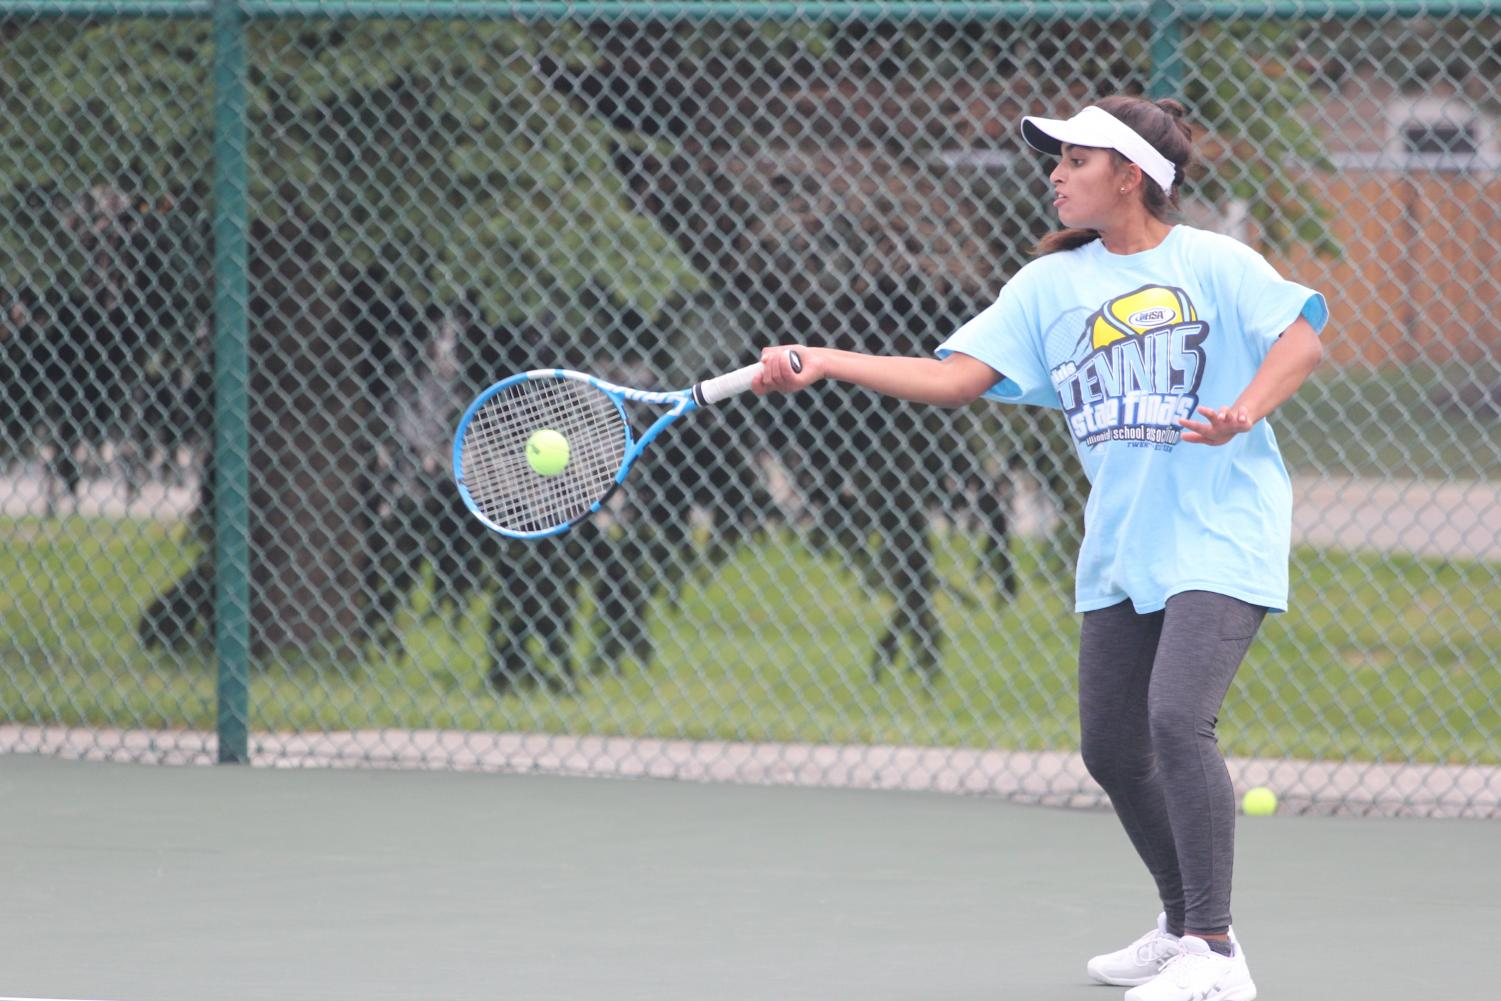 Karishma Bhalla working hard to prepare for the state tournment.